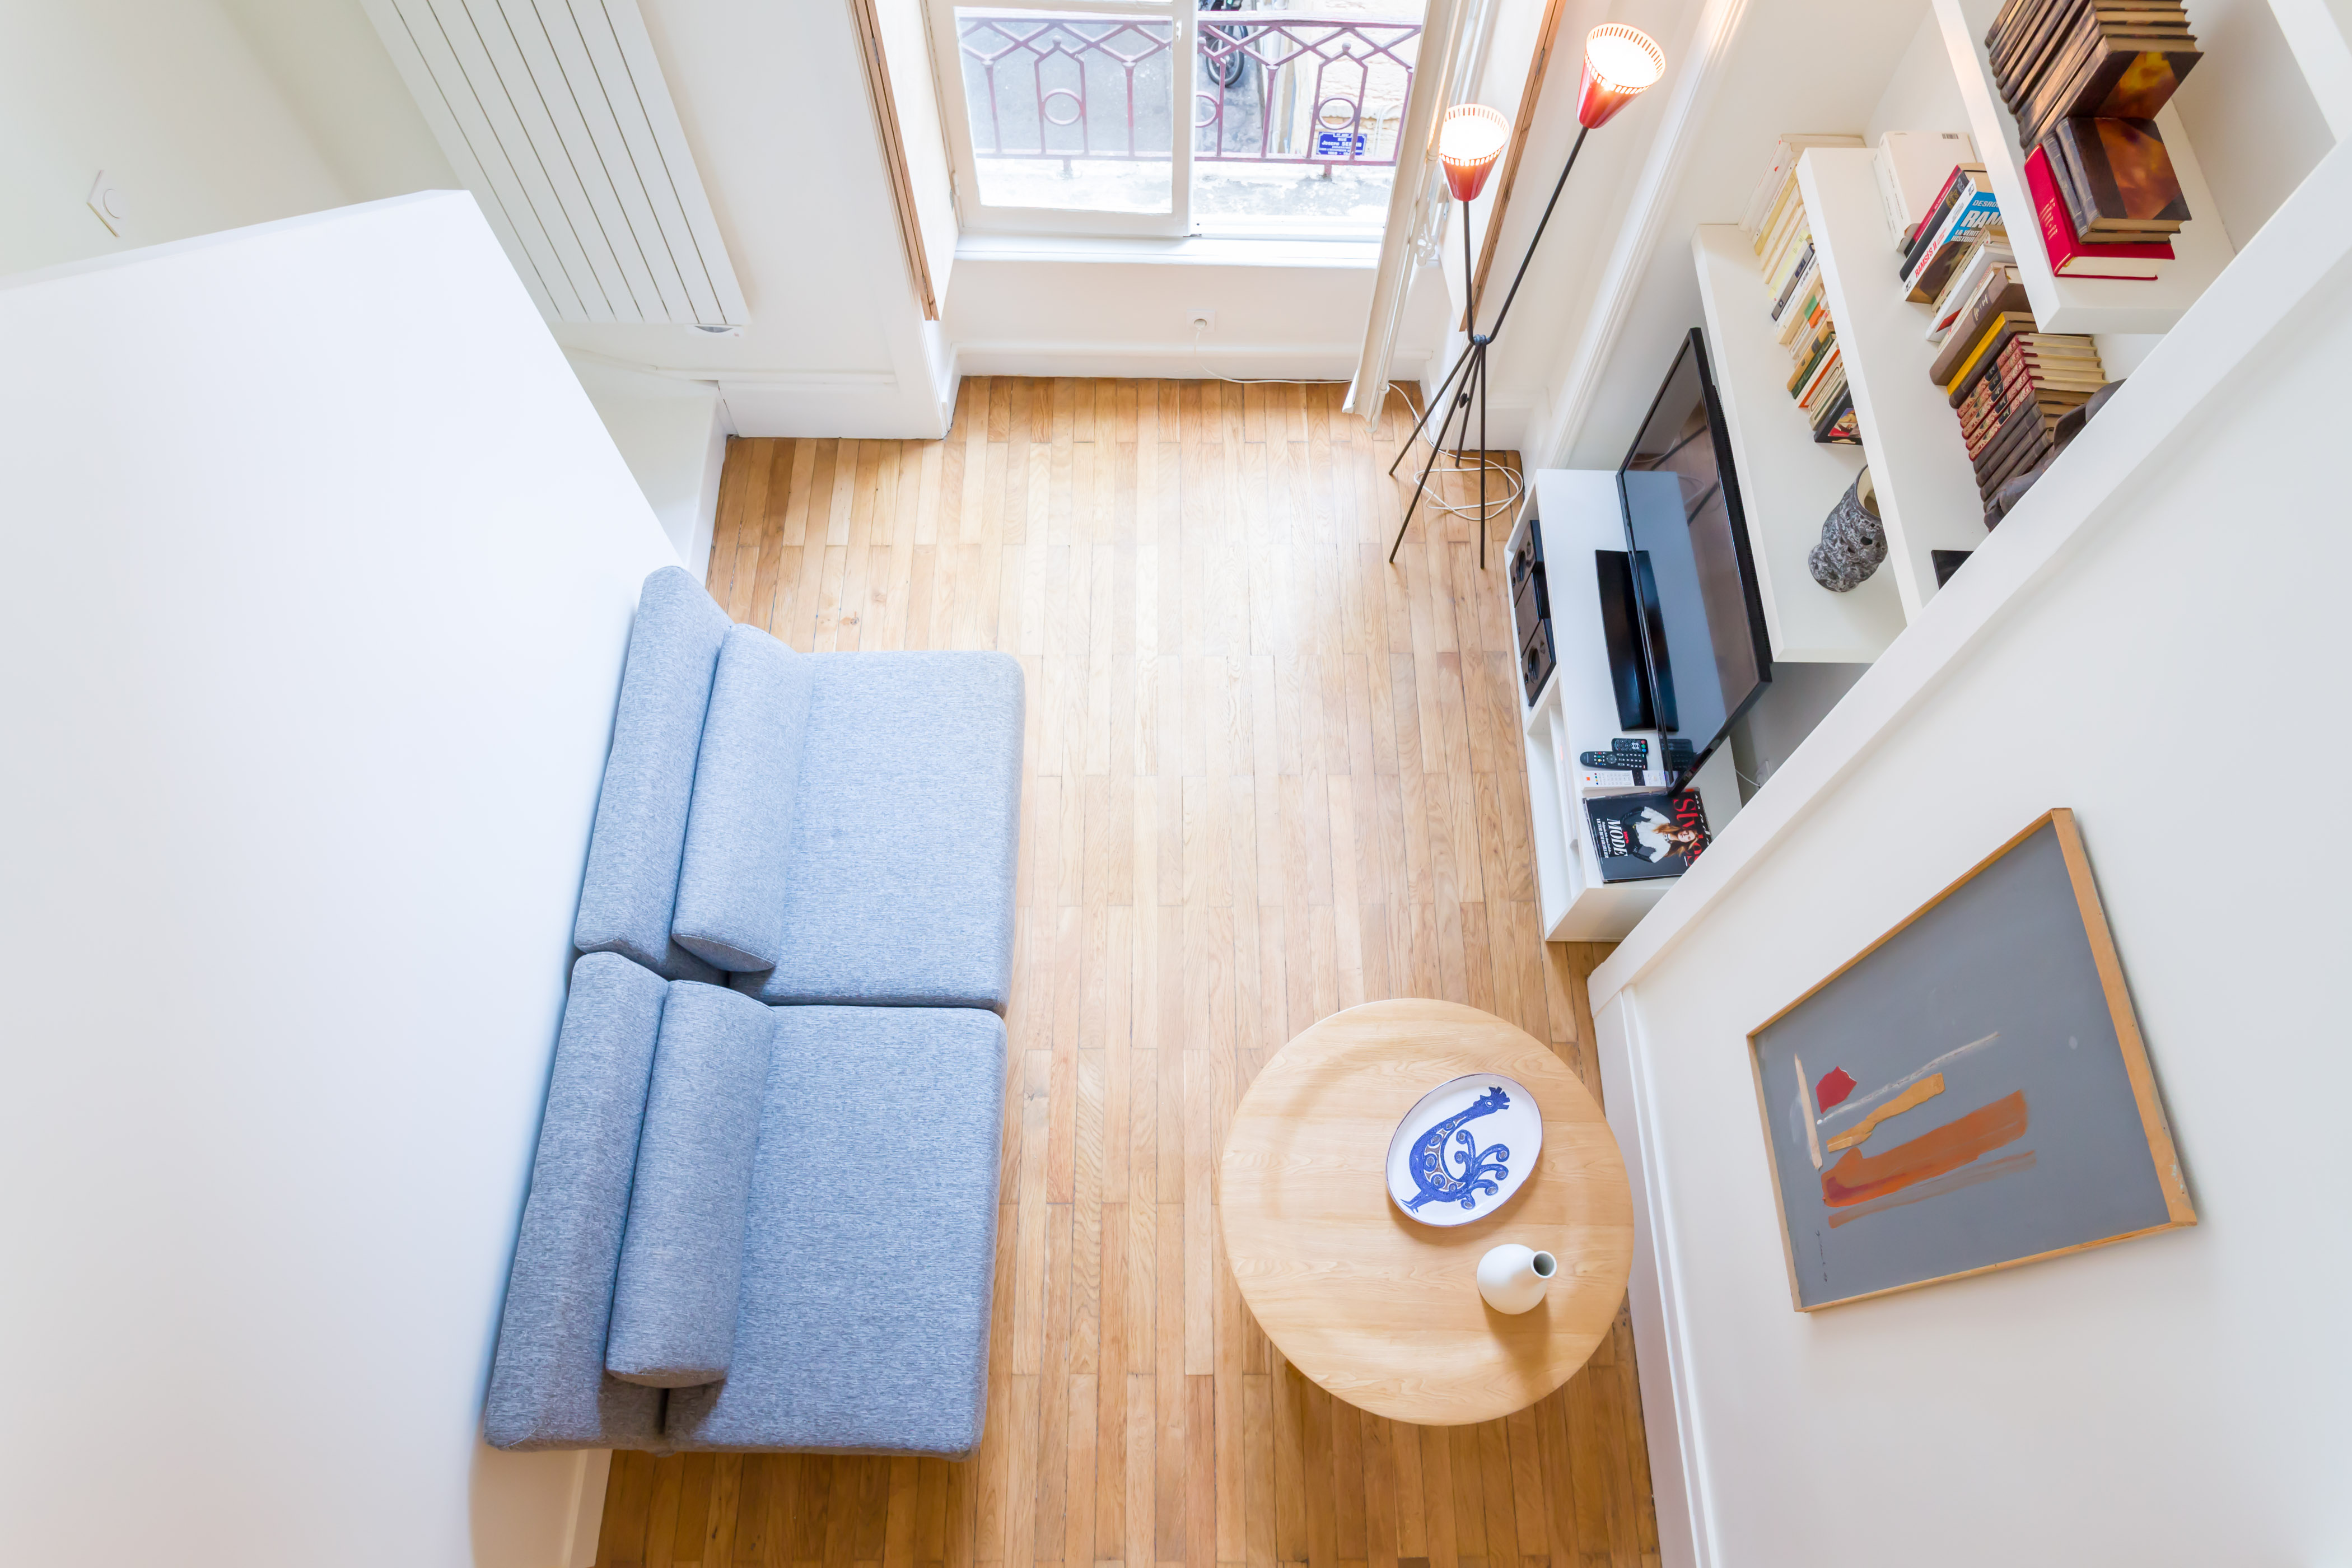 Holiday house in lyon 1er arrondissement france opera for Location t2